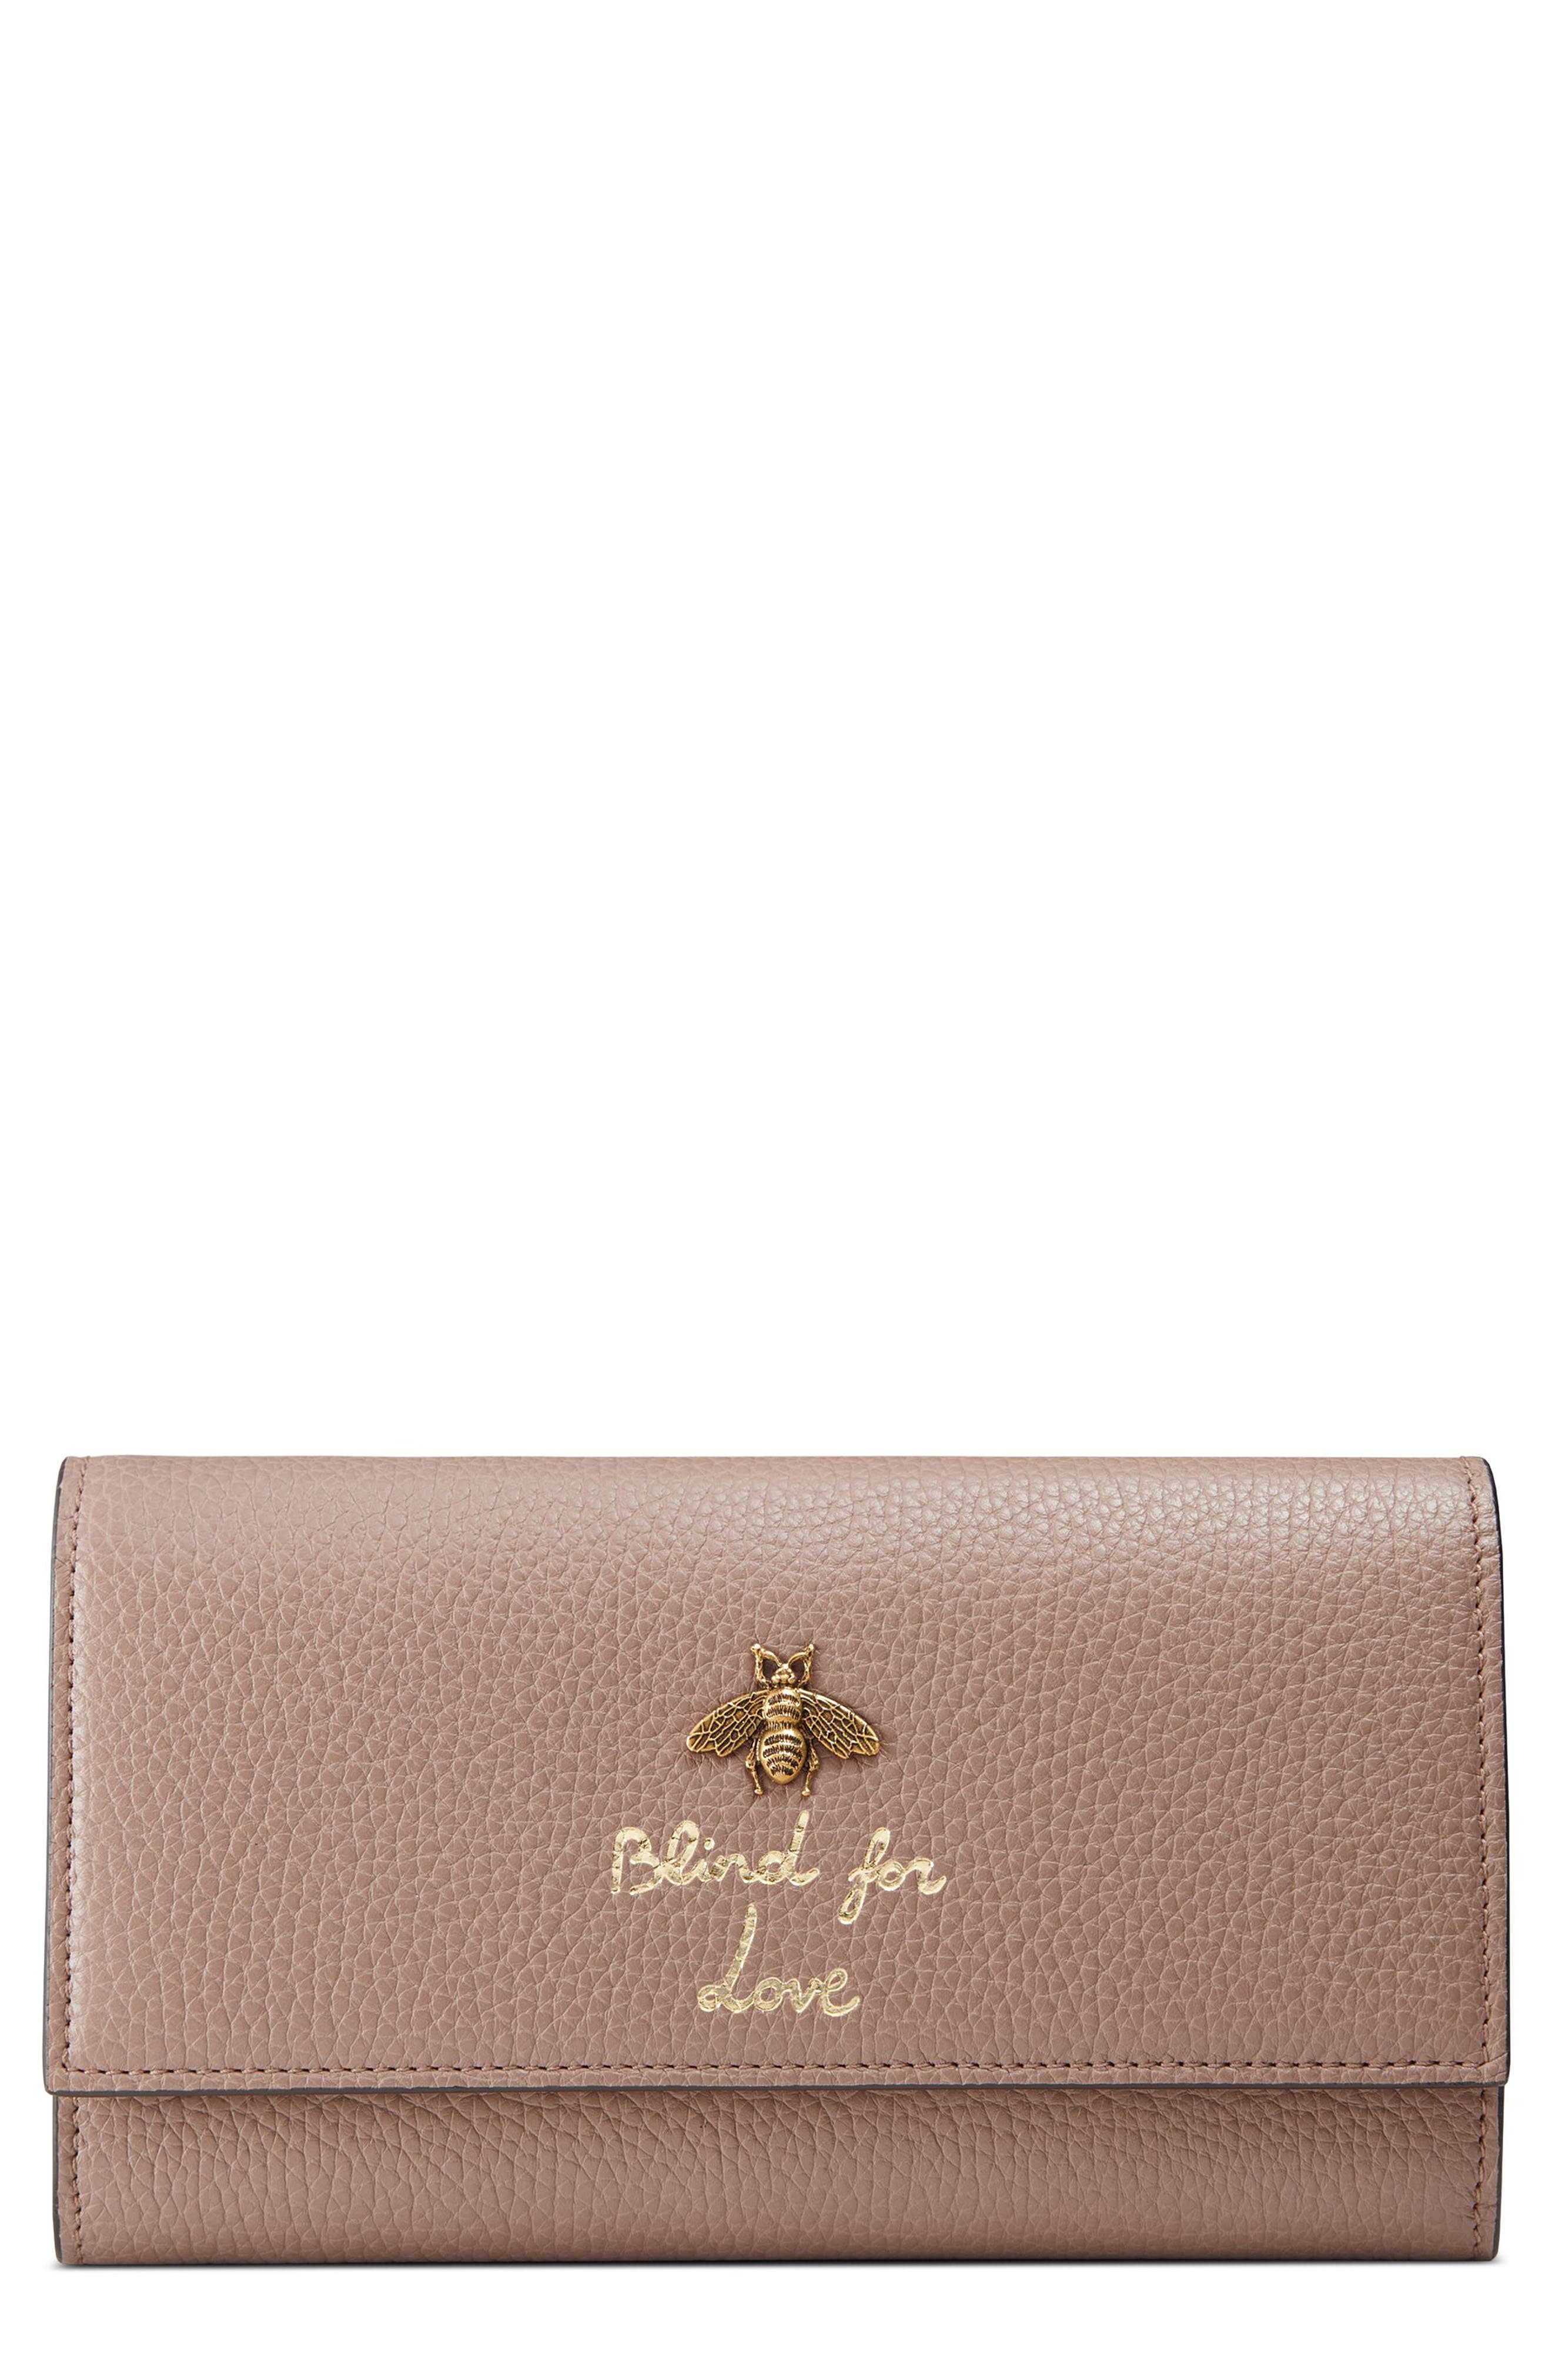 Main Image - Gucci Animalier Bee Leather Continental Wallet